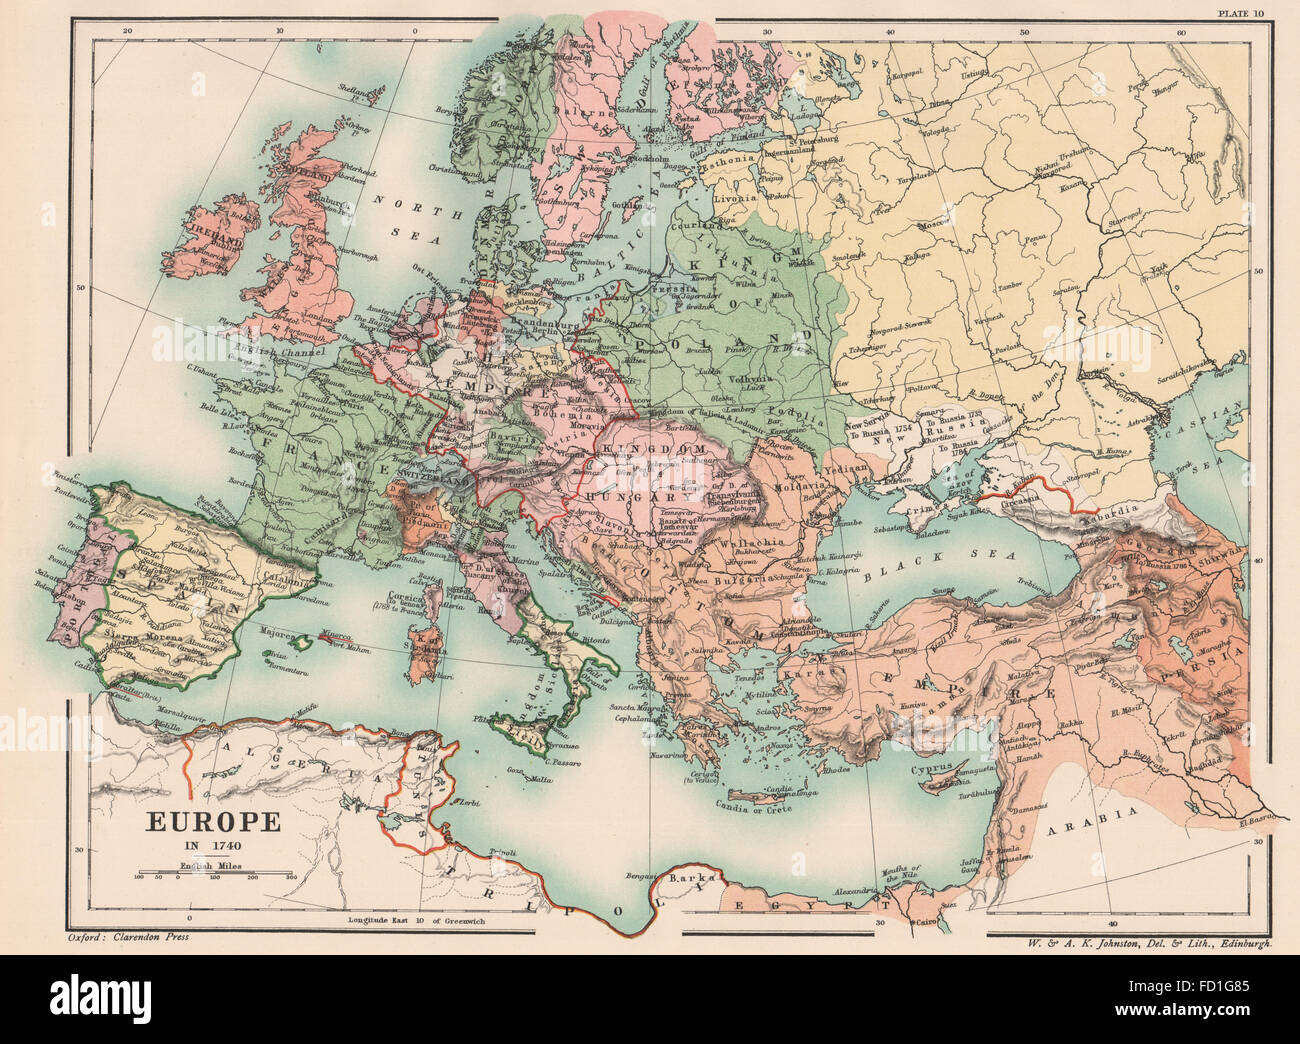 London england europe man marking a cities on world map footage europe in 1740 france england holy roman empire spain ottomans c 1902 map gumiabroncs Choice Image